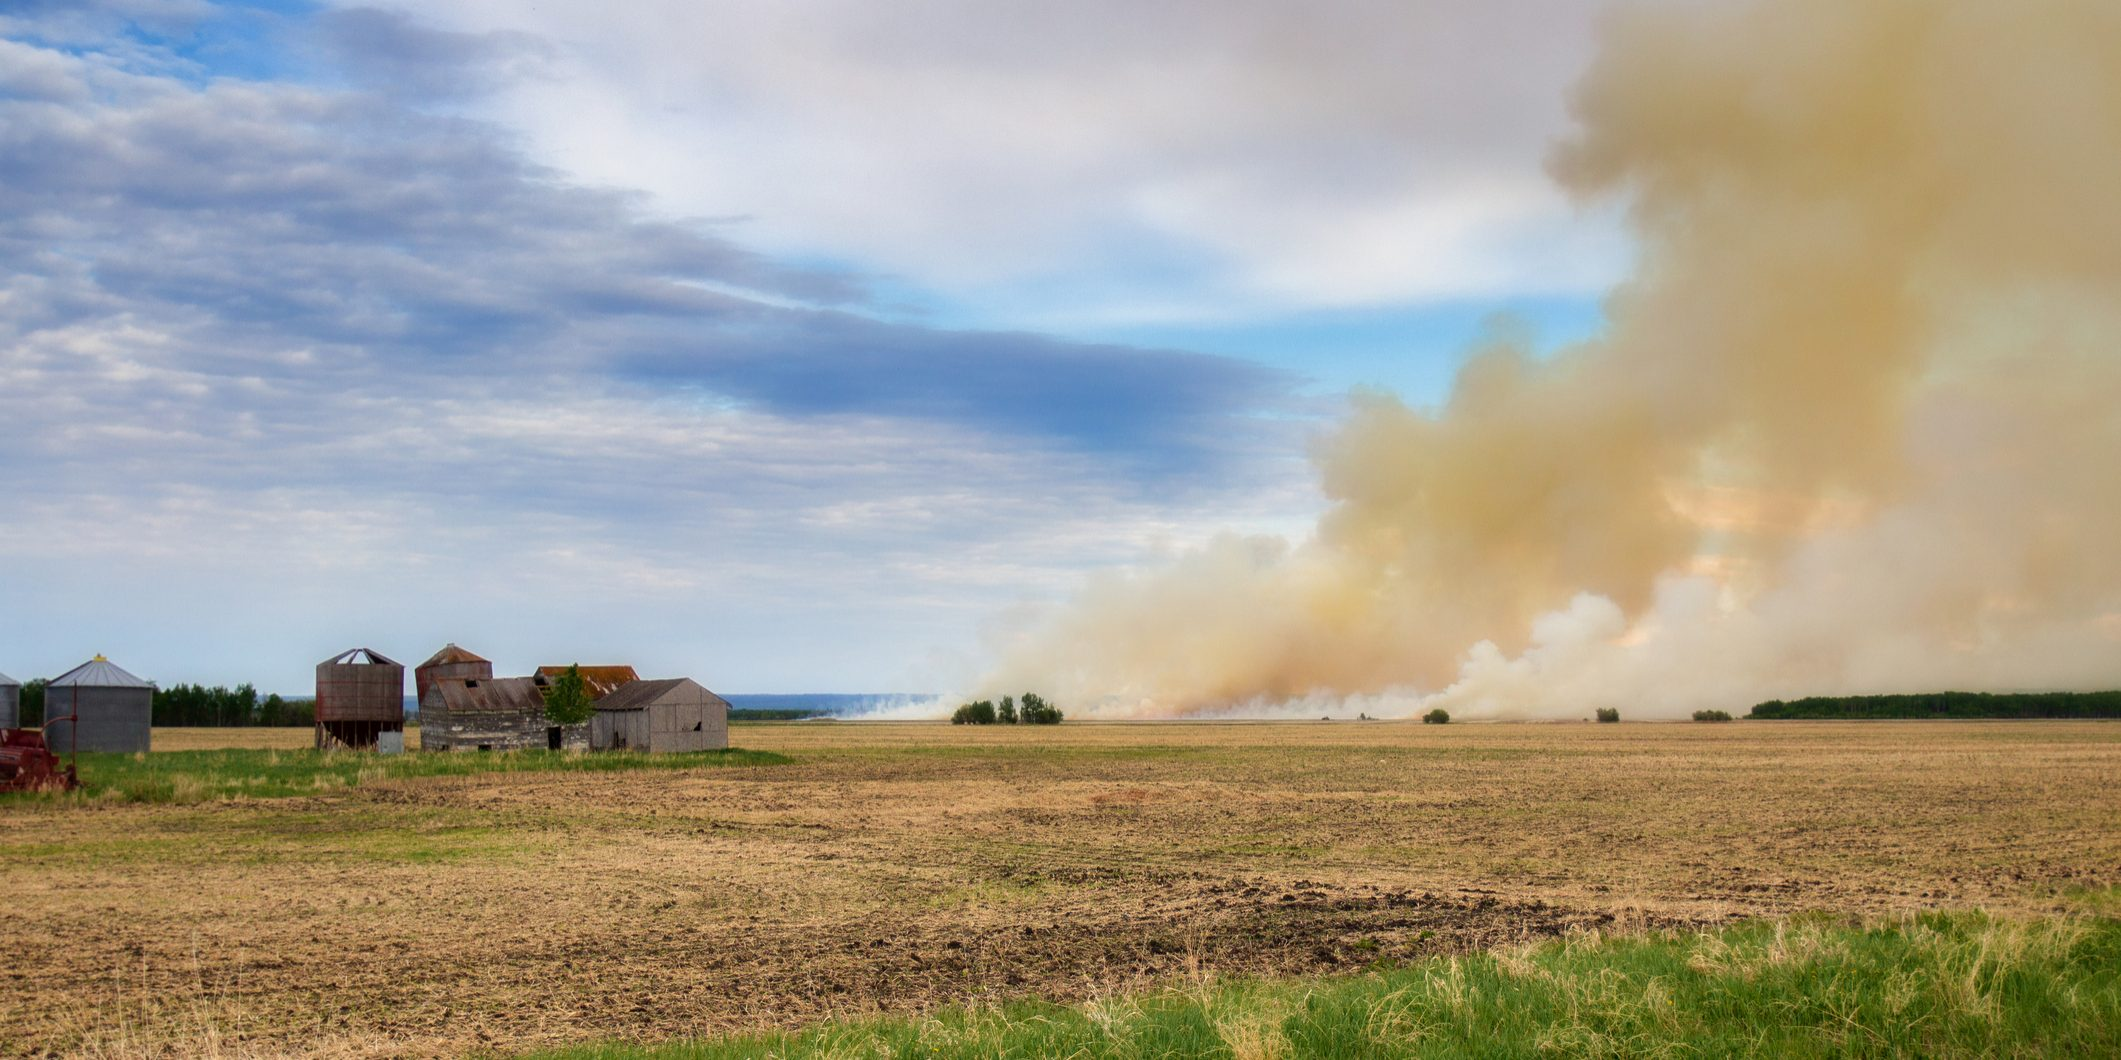 Billowing clouds of smoke from a fire burning a farm field with old sheds nearby in a summer landscape